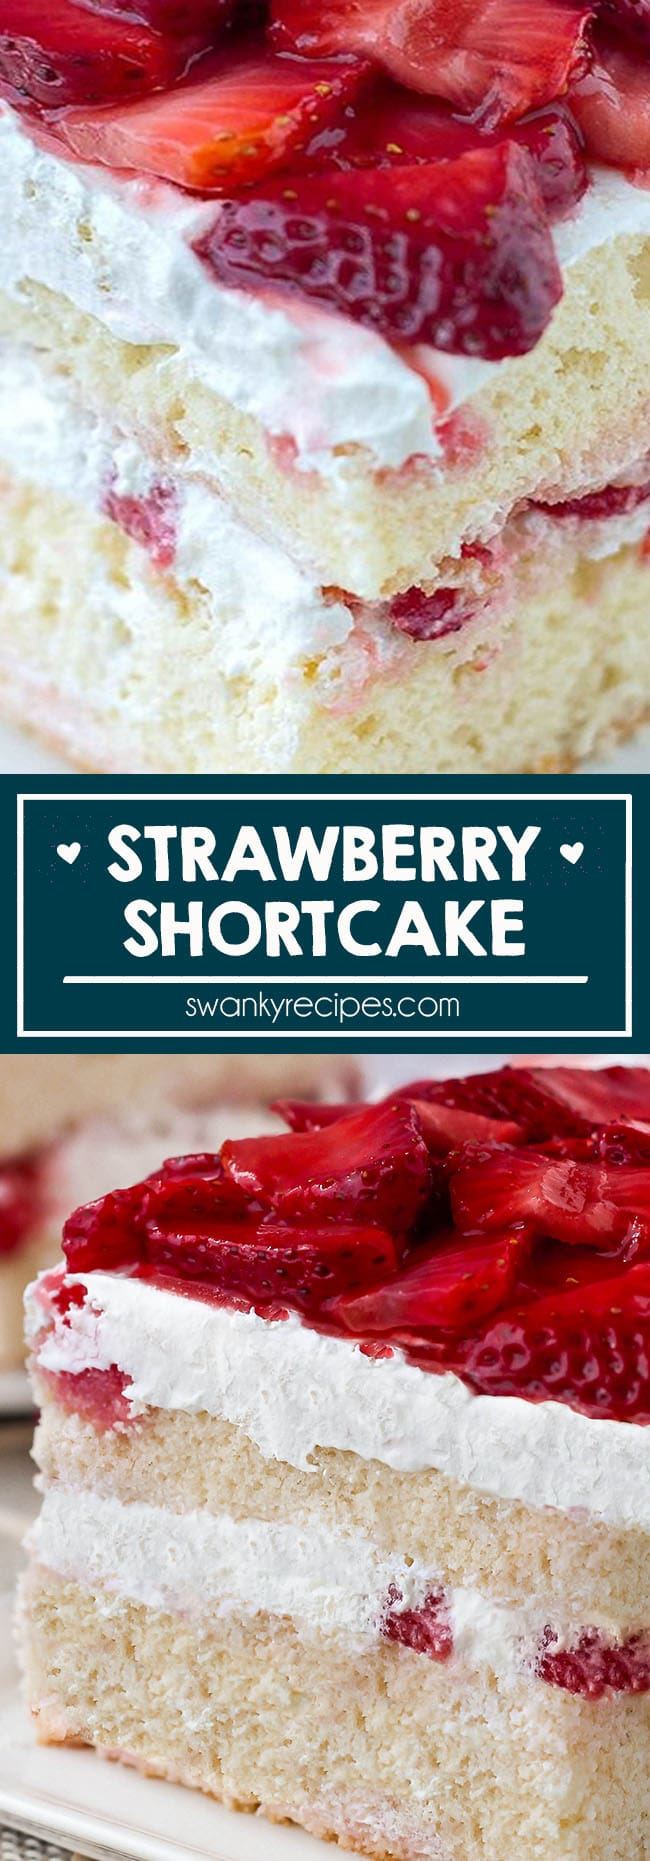 Strawberry Shortcake Swanky Recipes